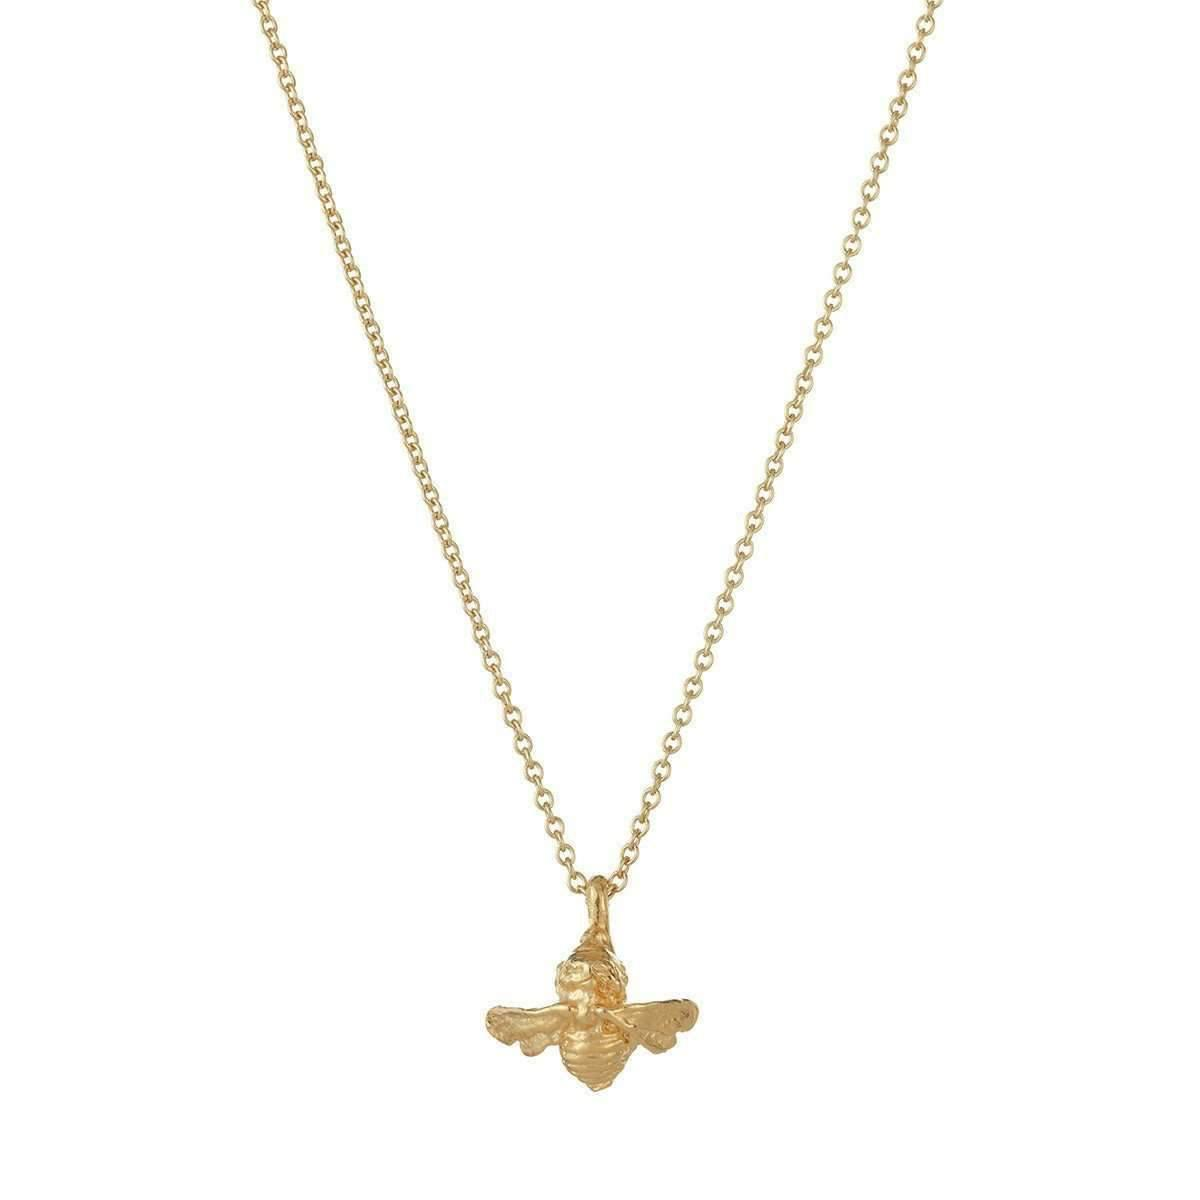 Deborah Blyth Jewellery Gold Bee With White Sapphire Necklace MSLPzN